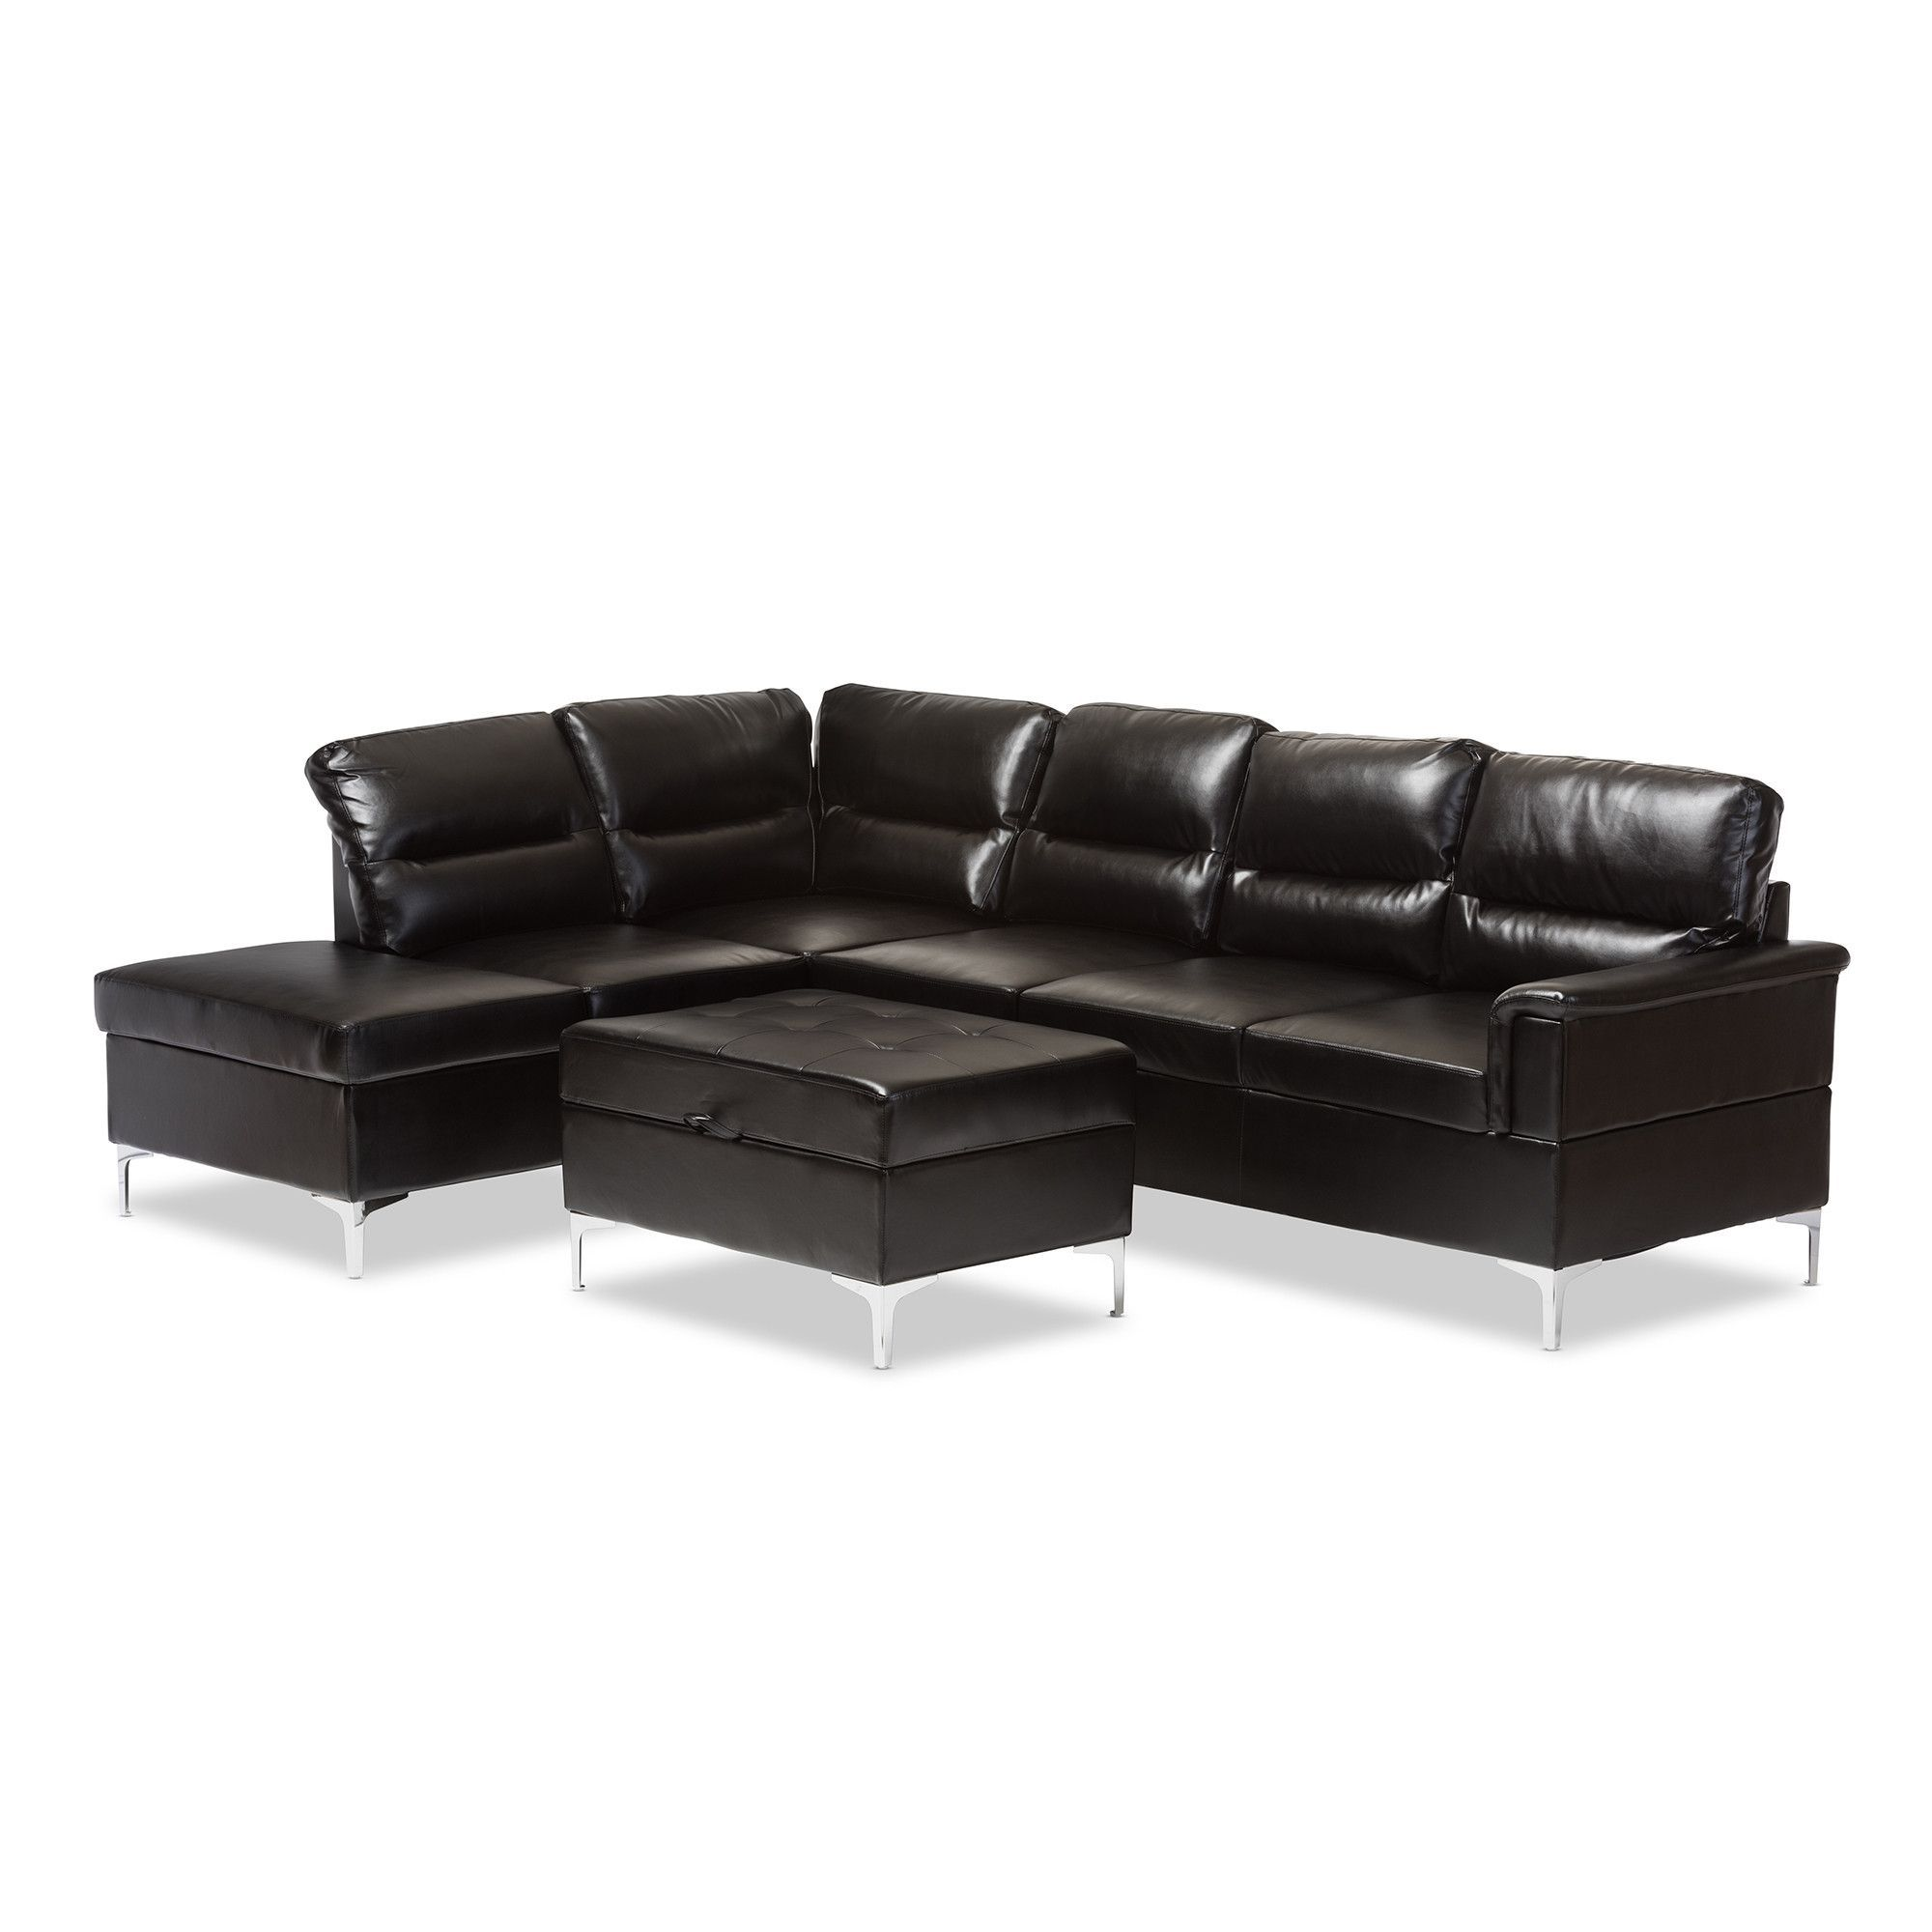 Kinsley Black Faux Leather 3 Piece Sectional Sofa Storage Ottoman